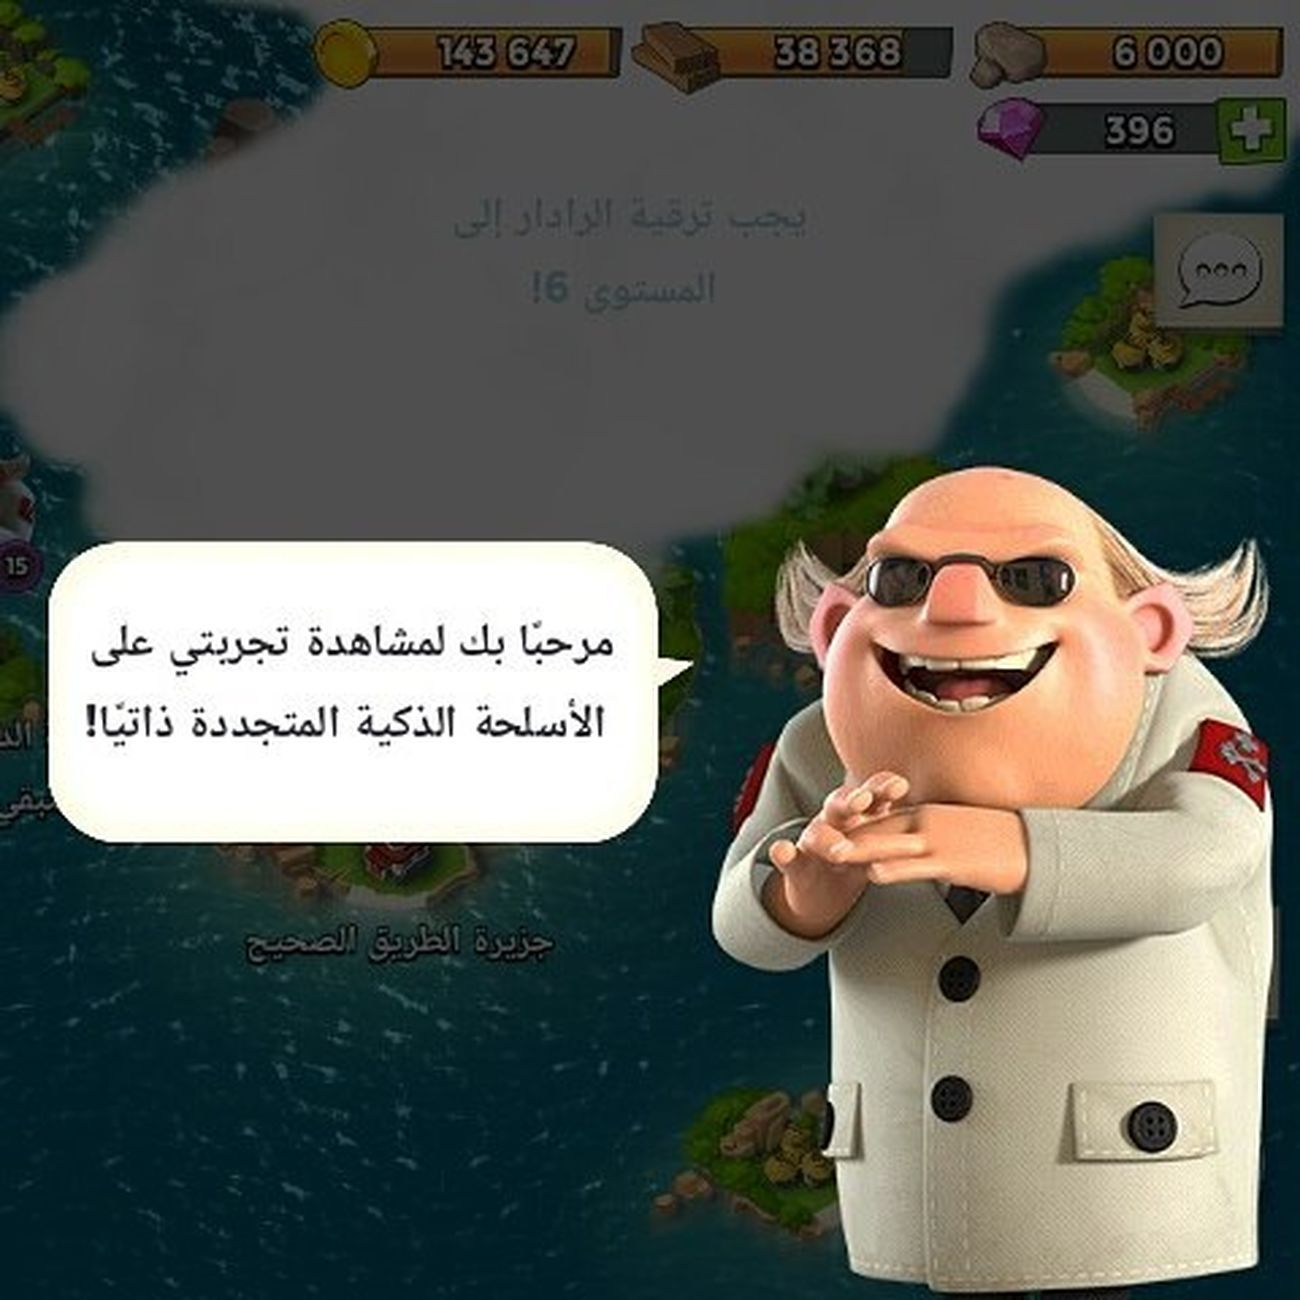 بوم_بيتش بومبيتش Boom_beach Boombeach Professor Game